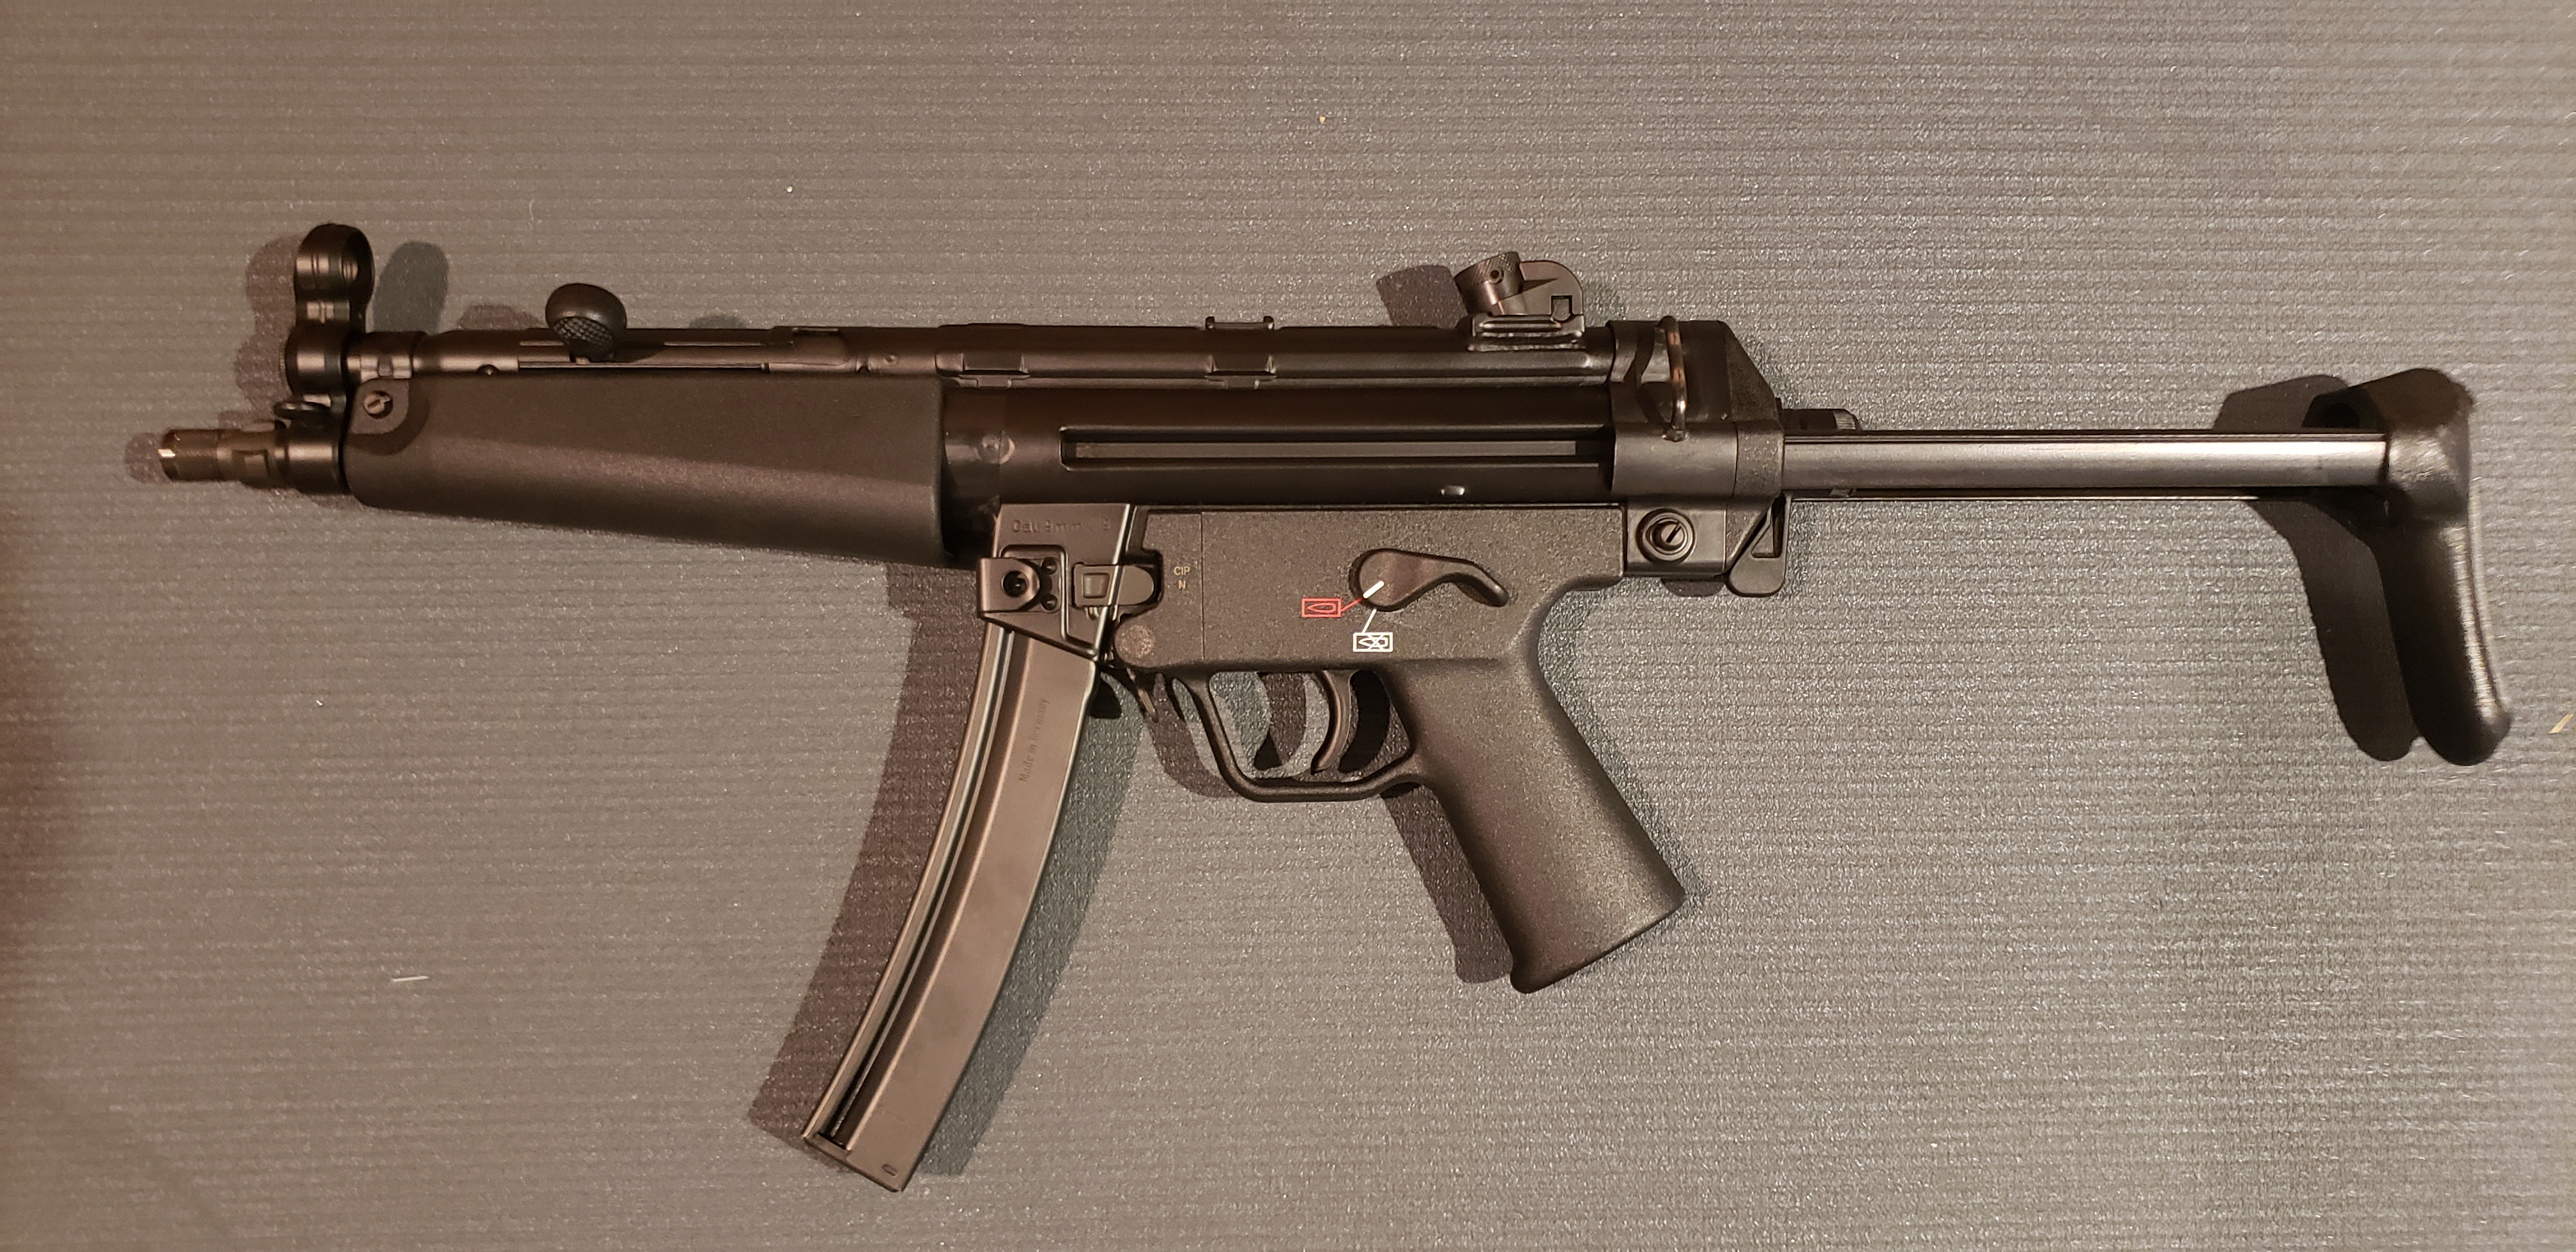 The Start Of My HK Collection-6tfinj9.jpg